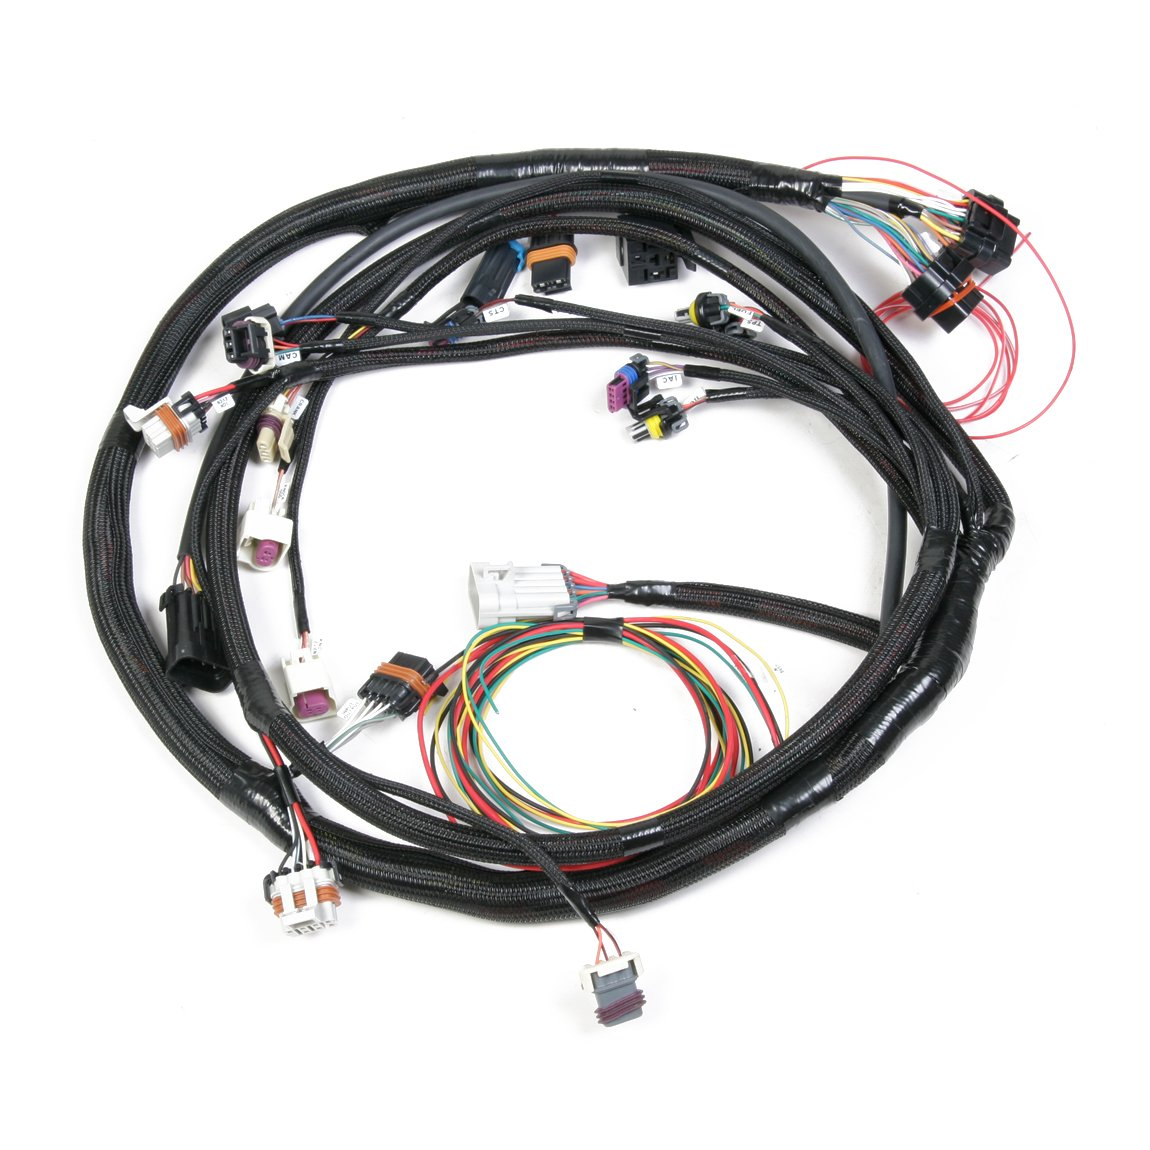 hight resolution of holley efi 558 103 ls2 3 7 58x 4x engine main harness ls2 engine swap wiring harness ls2 wiring harness